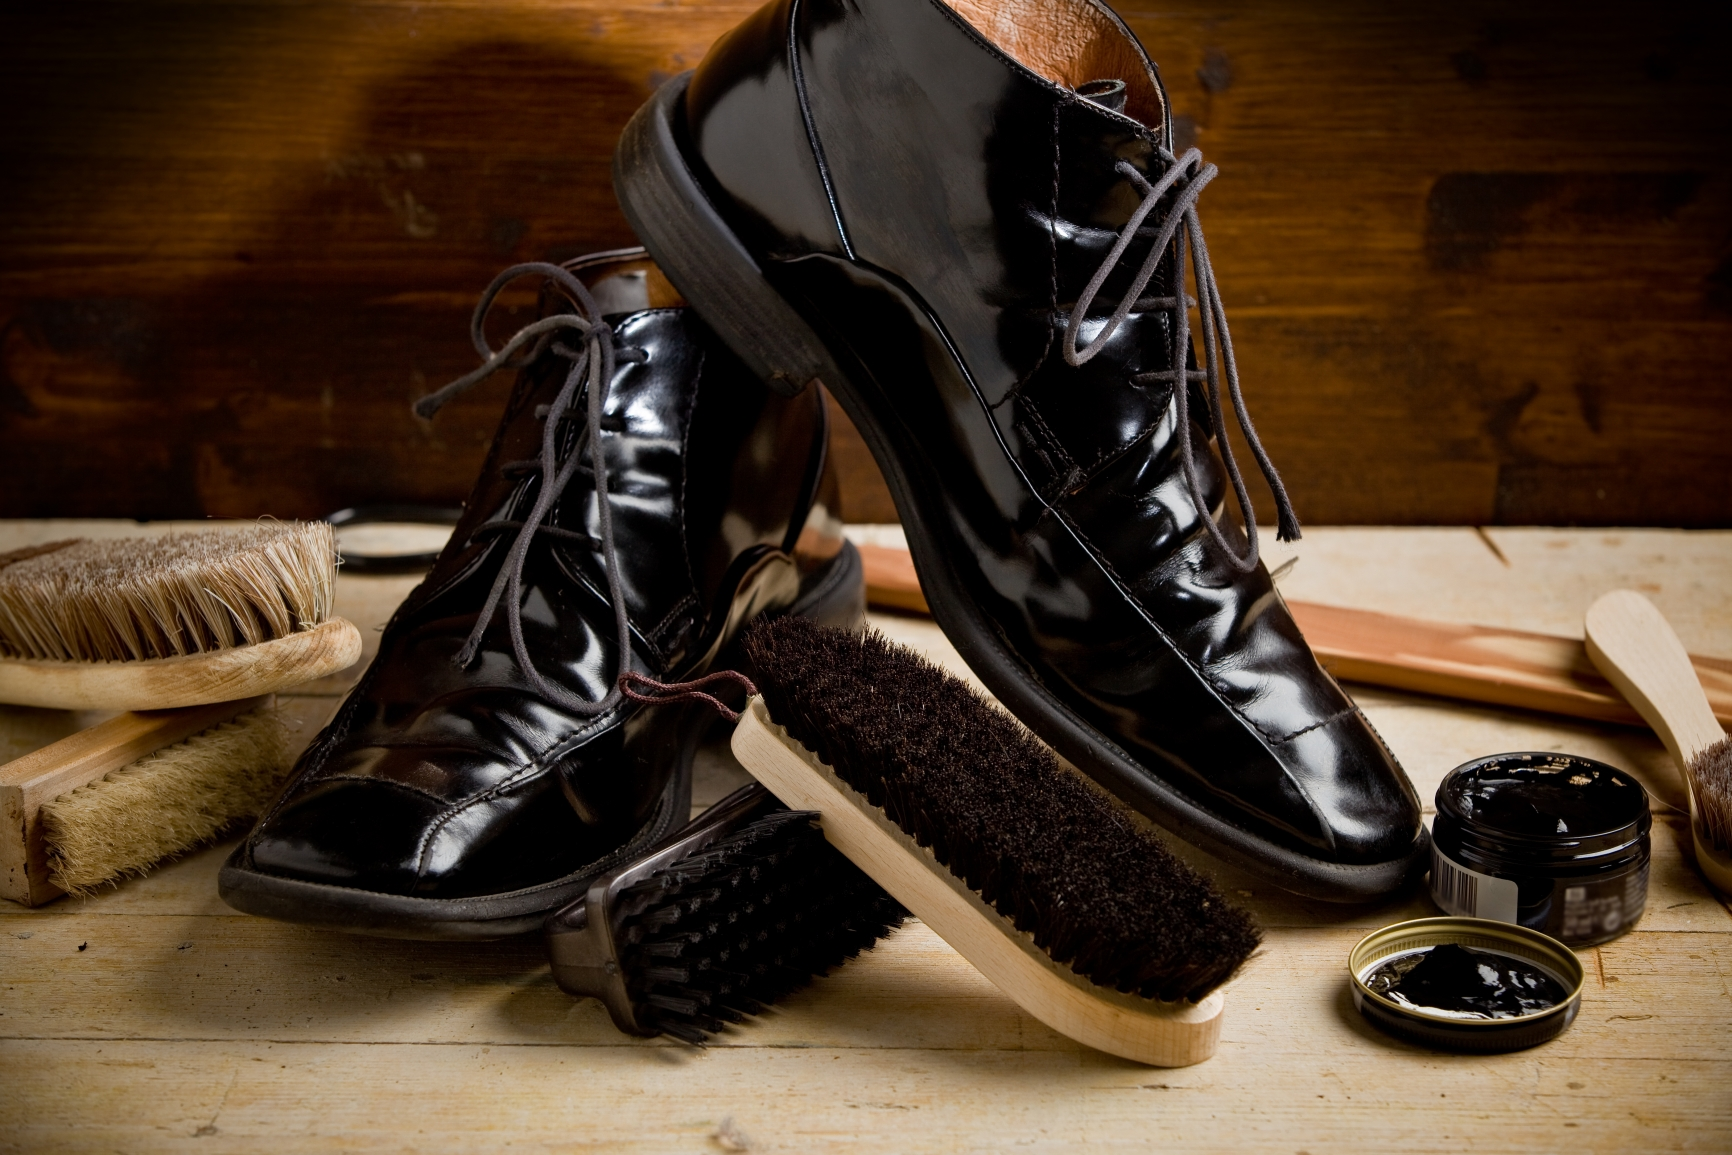 Are Polished Leather Shoes Any Good